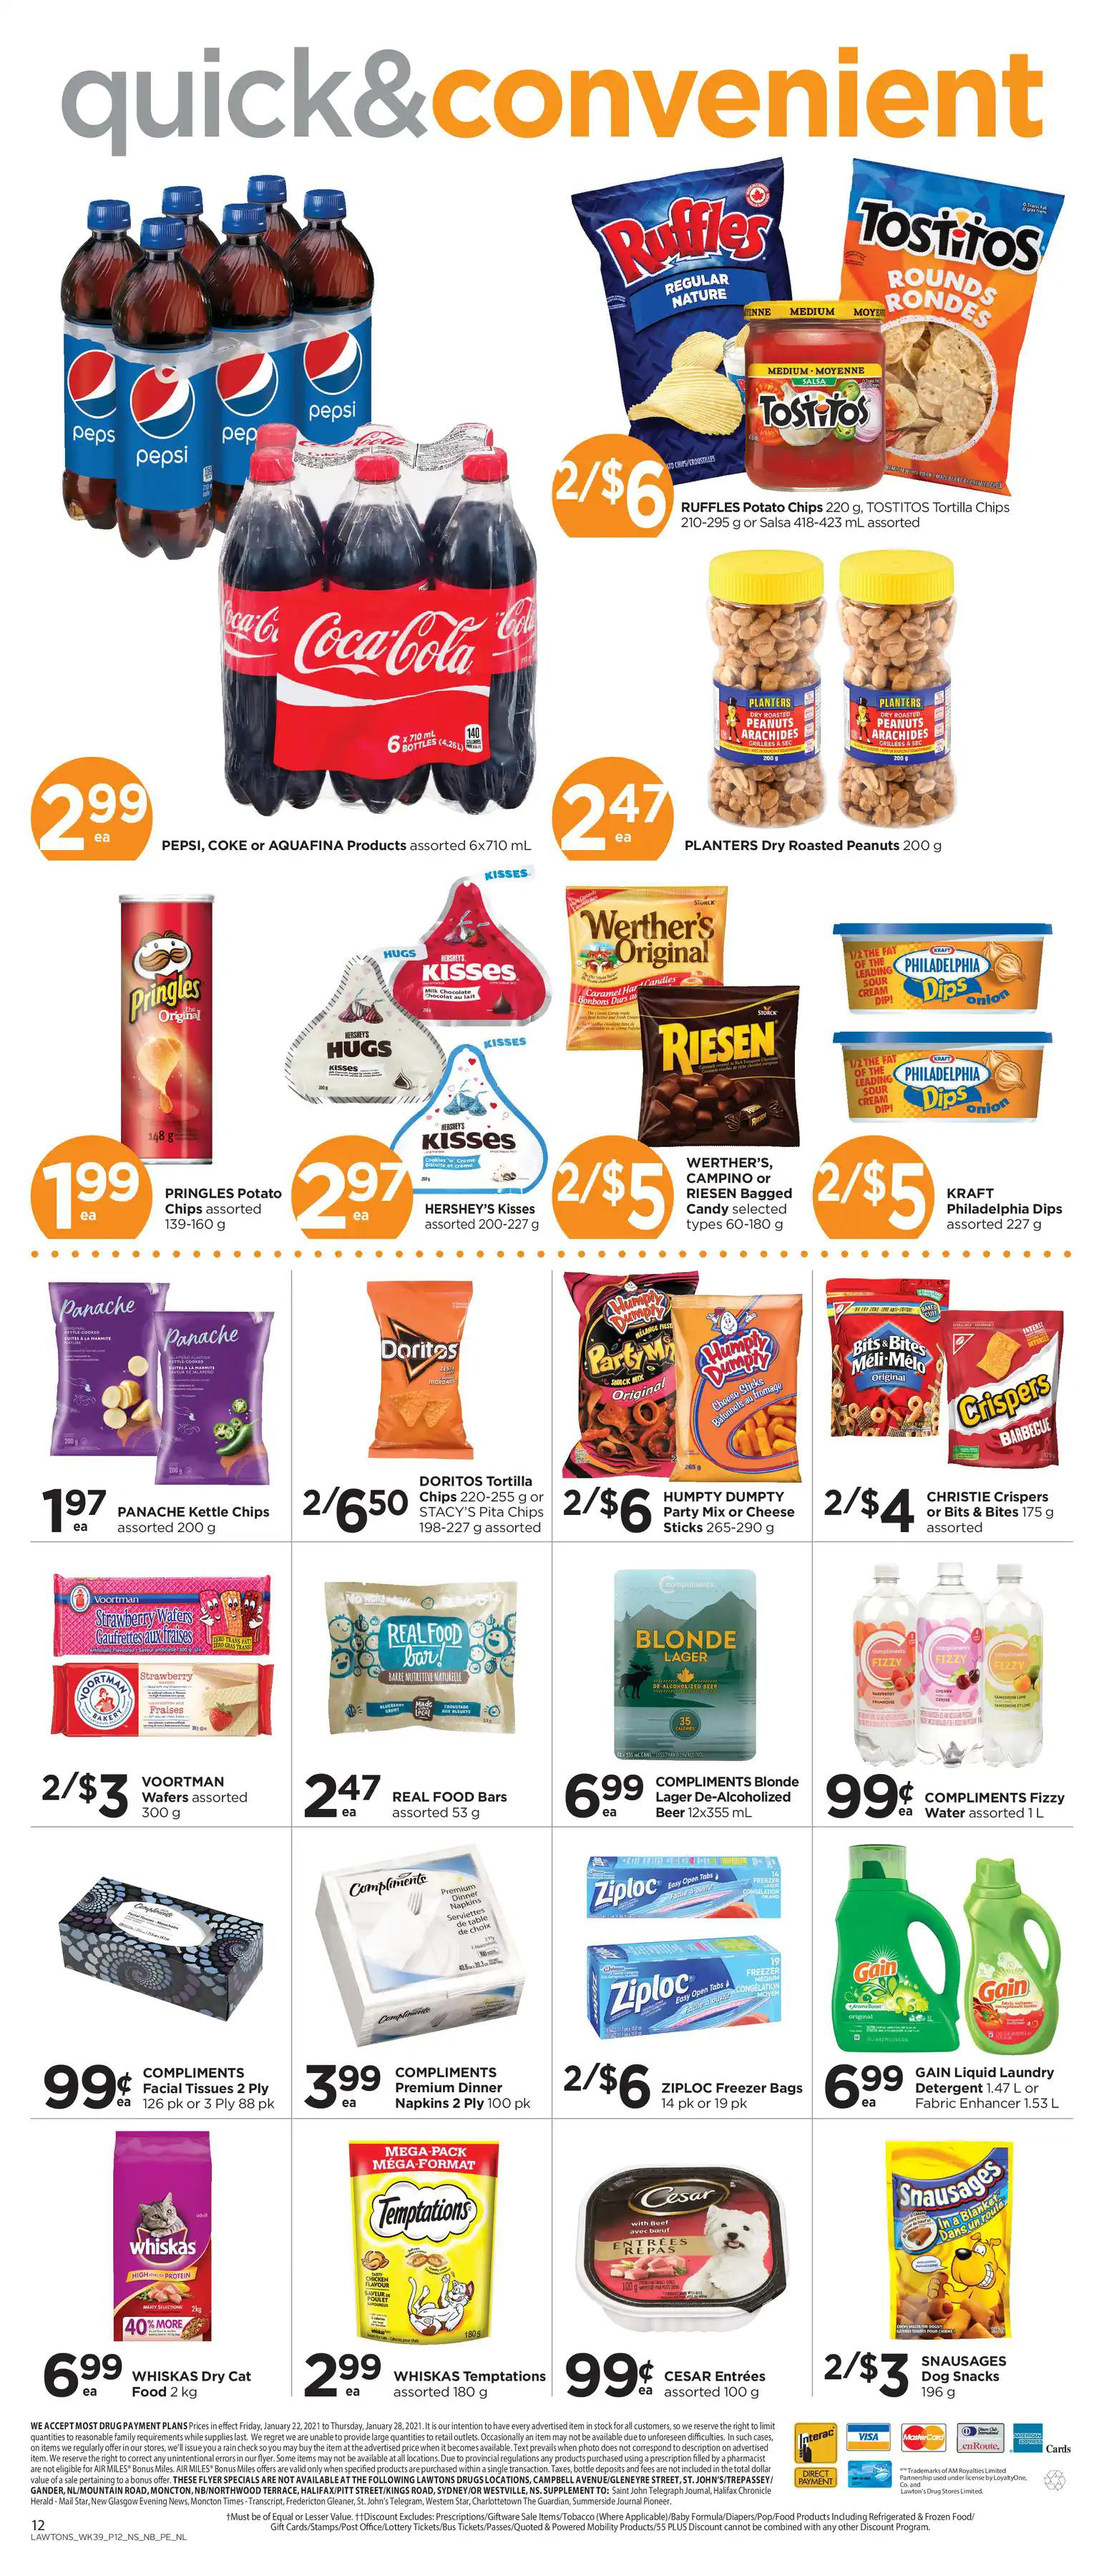 Lawtons Drugs - Weekly Flyer Specials - Page 11